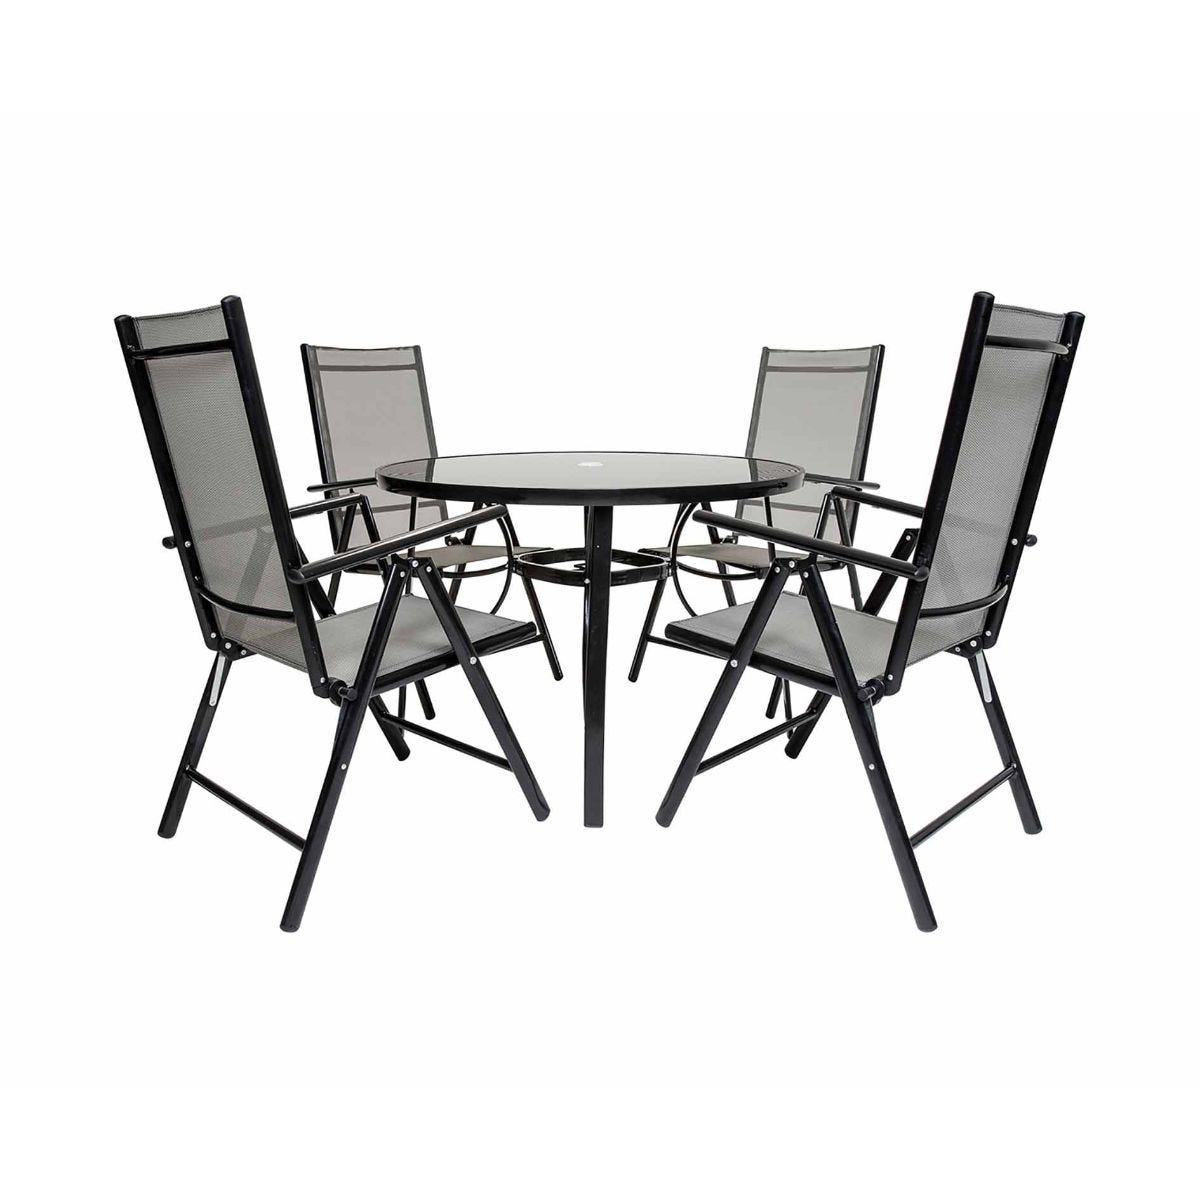 Charles Bentley Garden Mesh Dining Table and 4 Reclining Chairs, Black